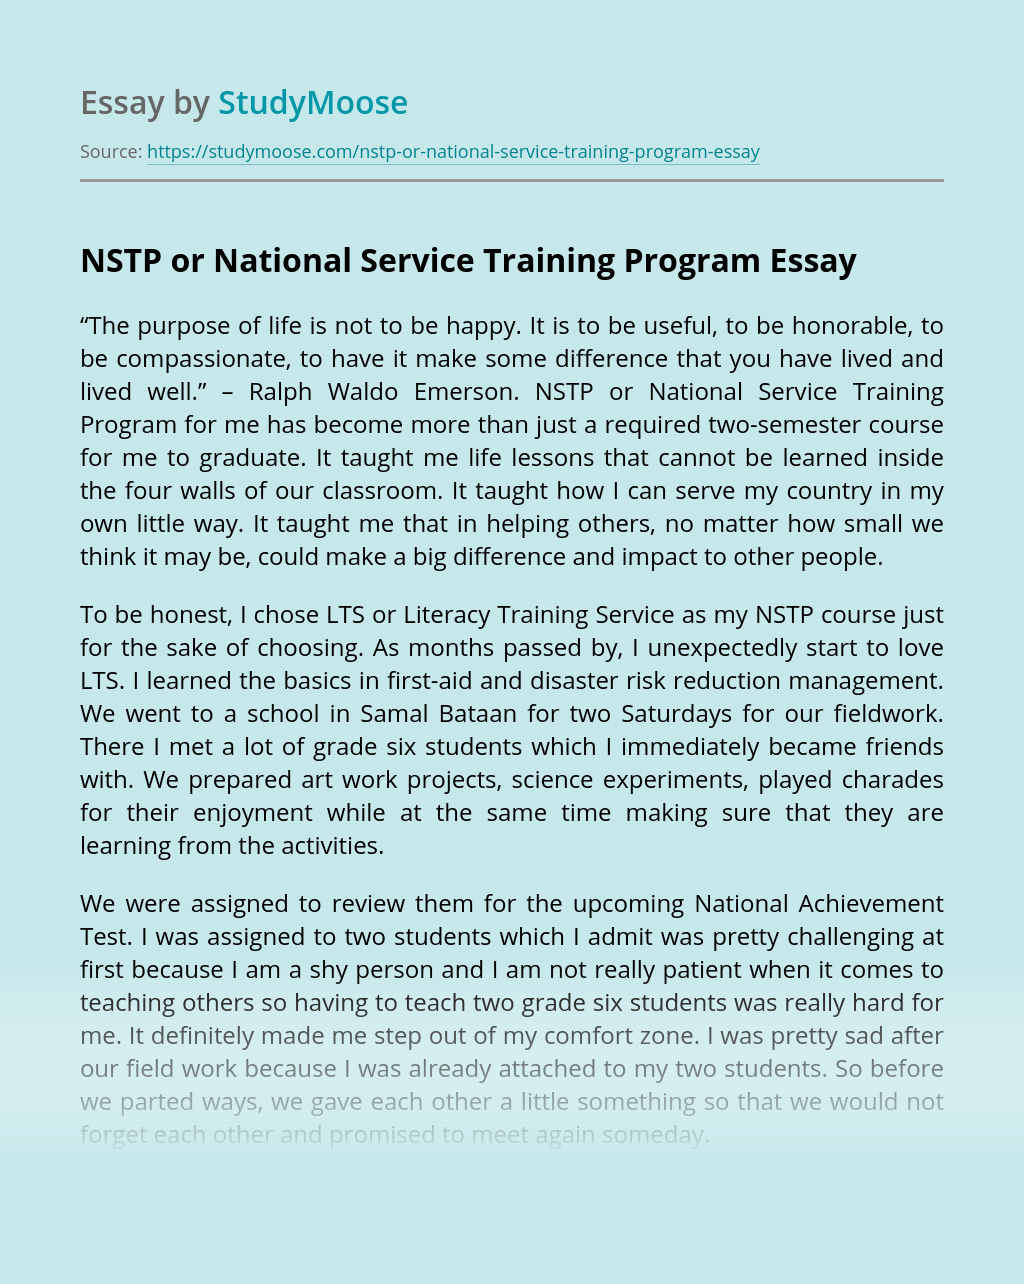 Essay about benefits of national service training programme